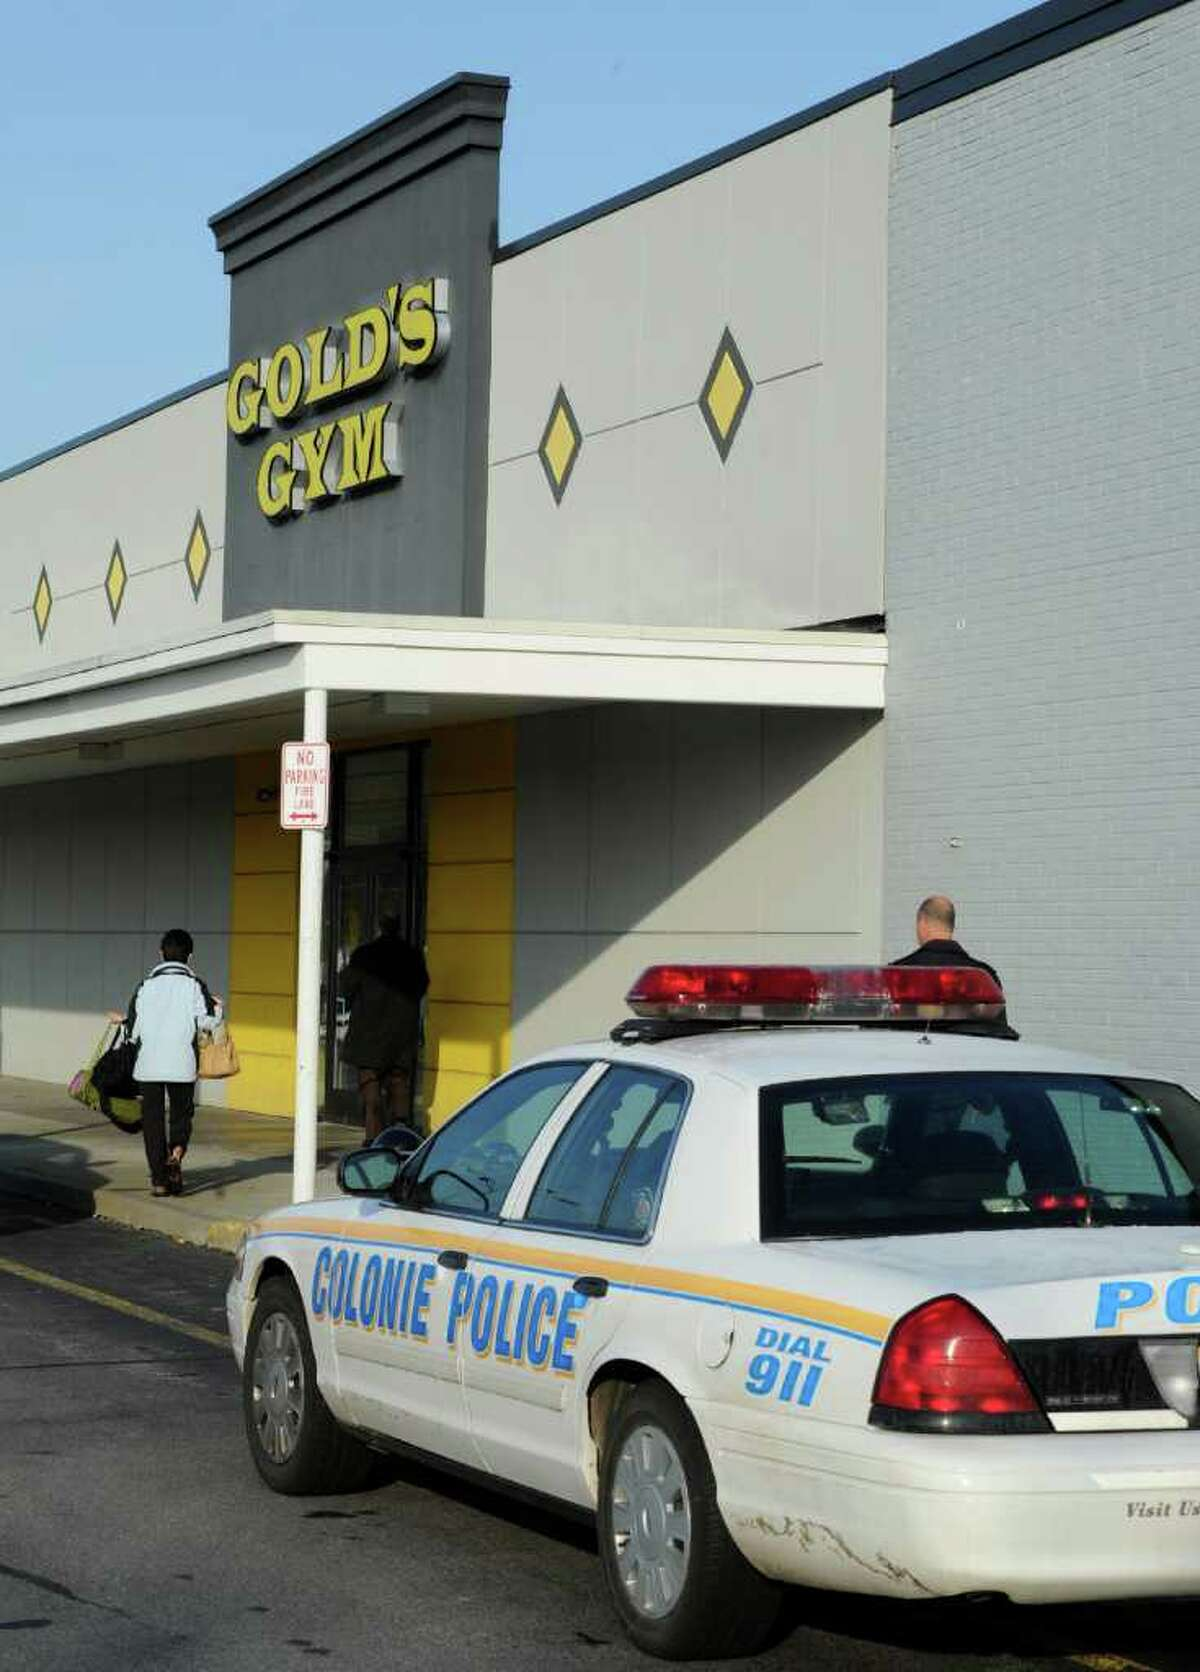 It's business as usual at Gold's Gym in Latham, N.Y. after a man died after a struggle with Colonie Police at the gym early this morning October 31, 2011. (Skip Dickstein / Times Union)